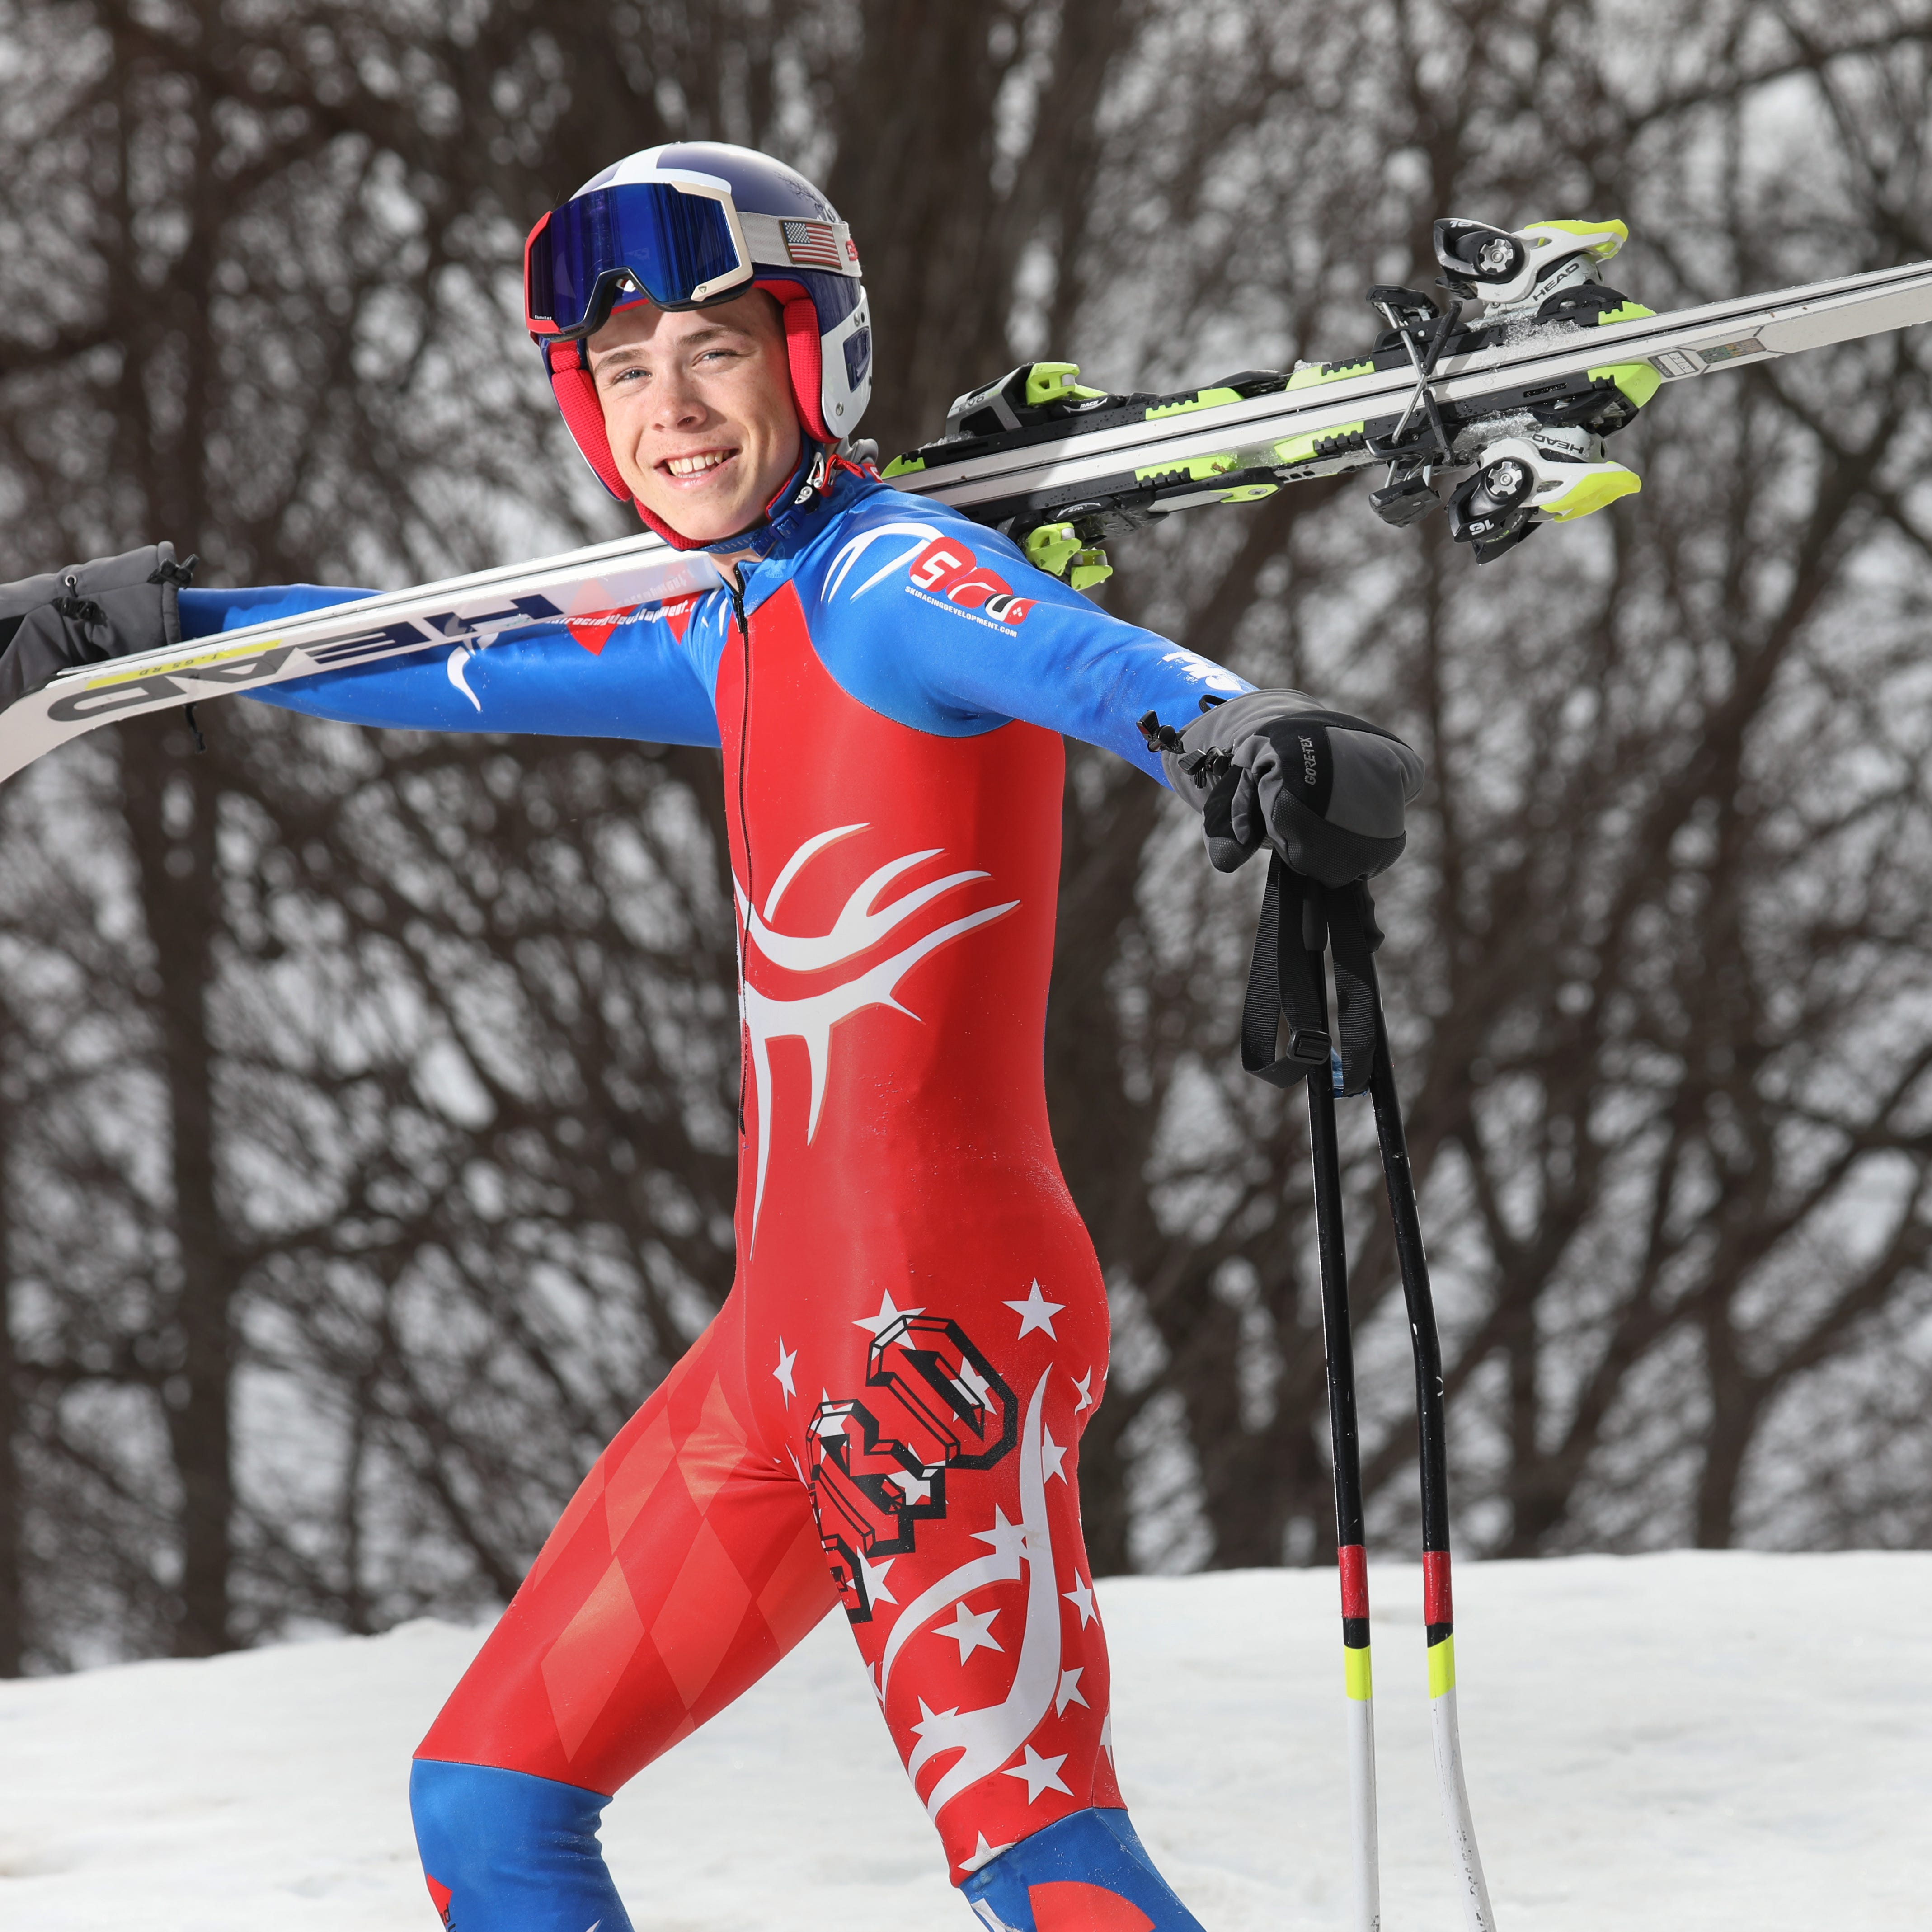 Pittsford's Graham overcomes gruesome injury and wheelchair to win AGR Skier of the Year